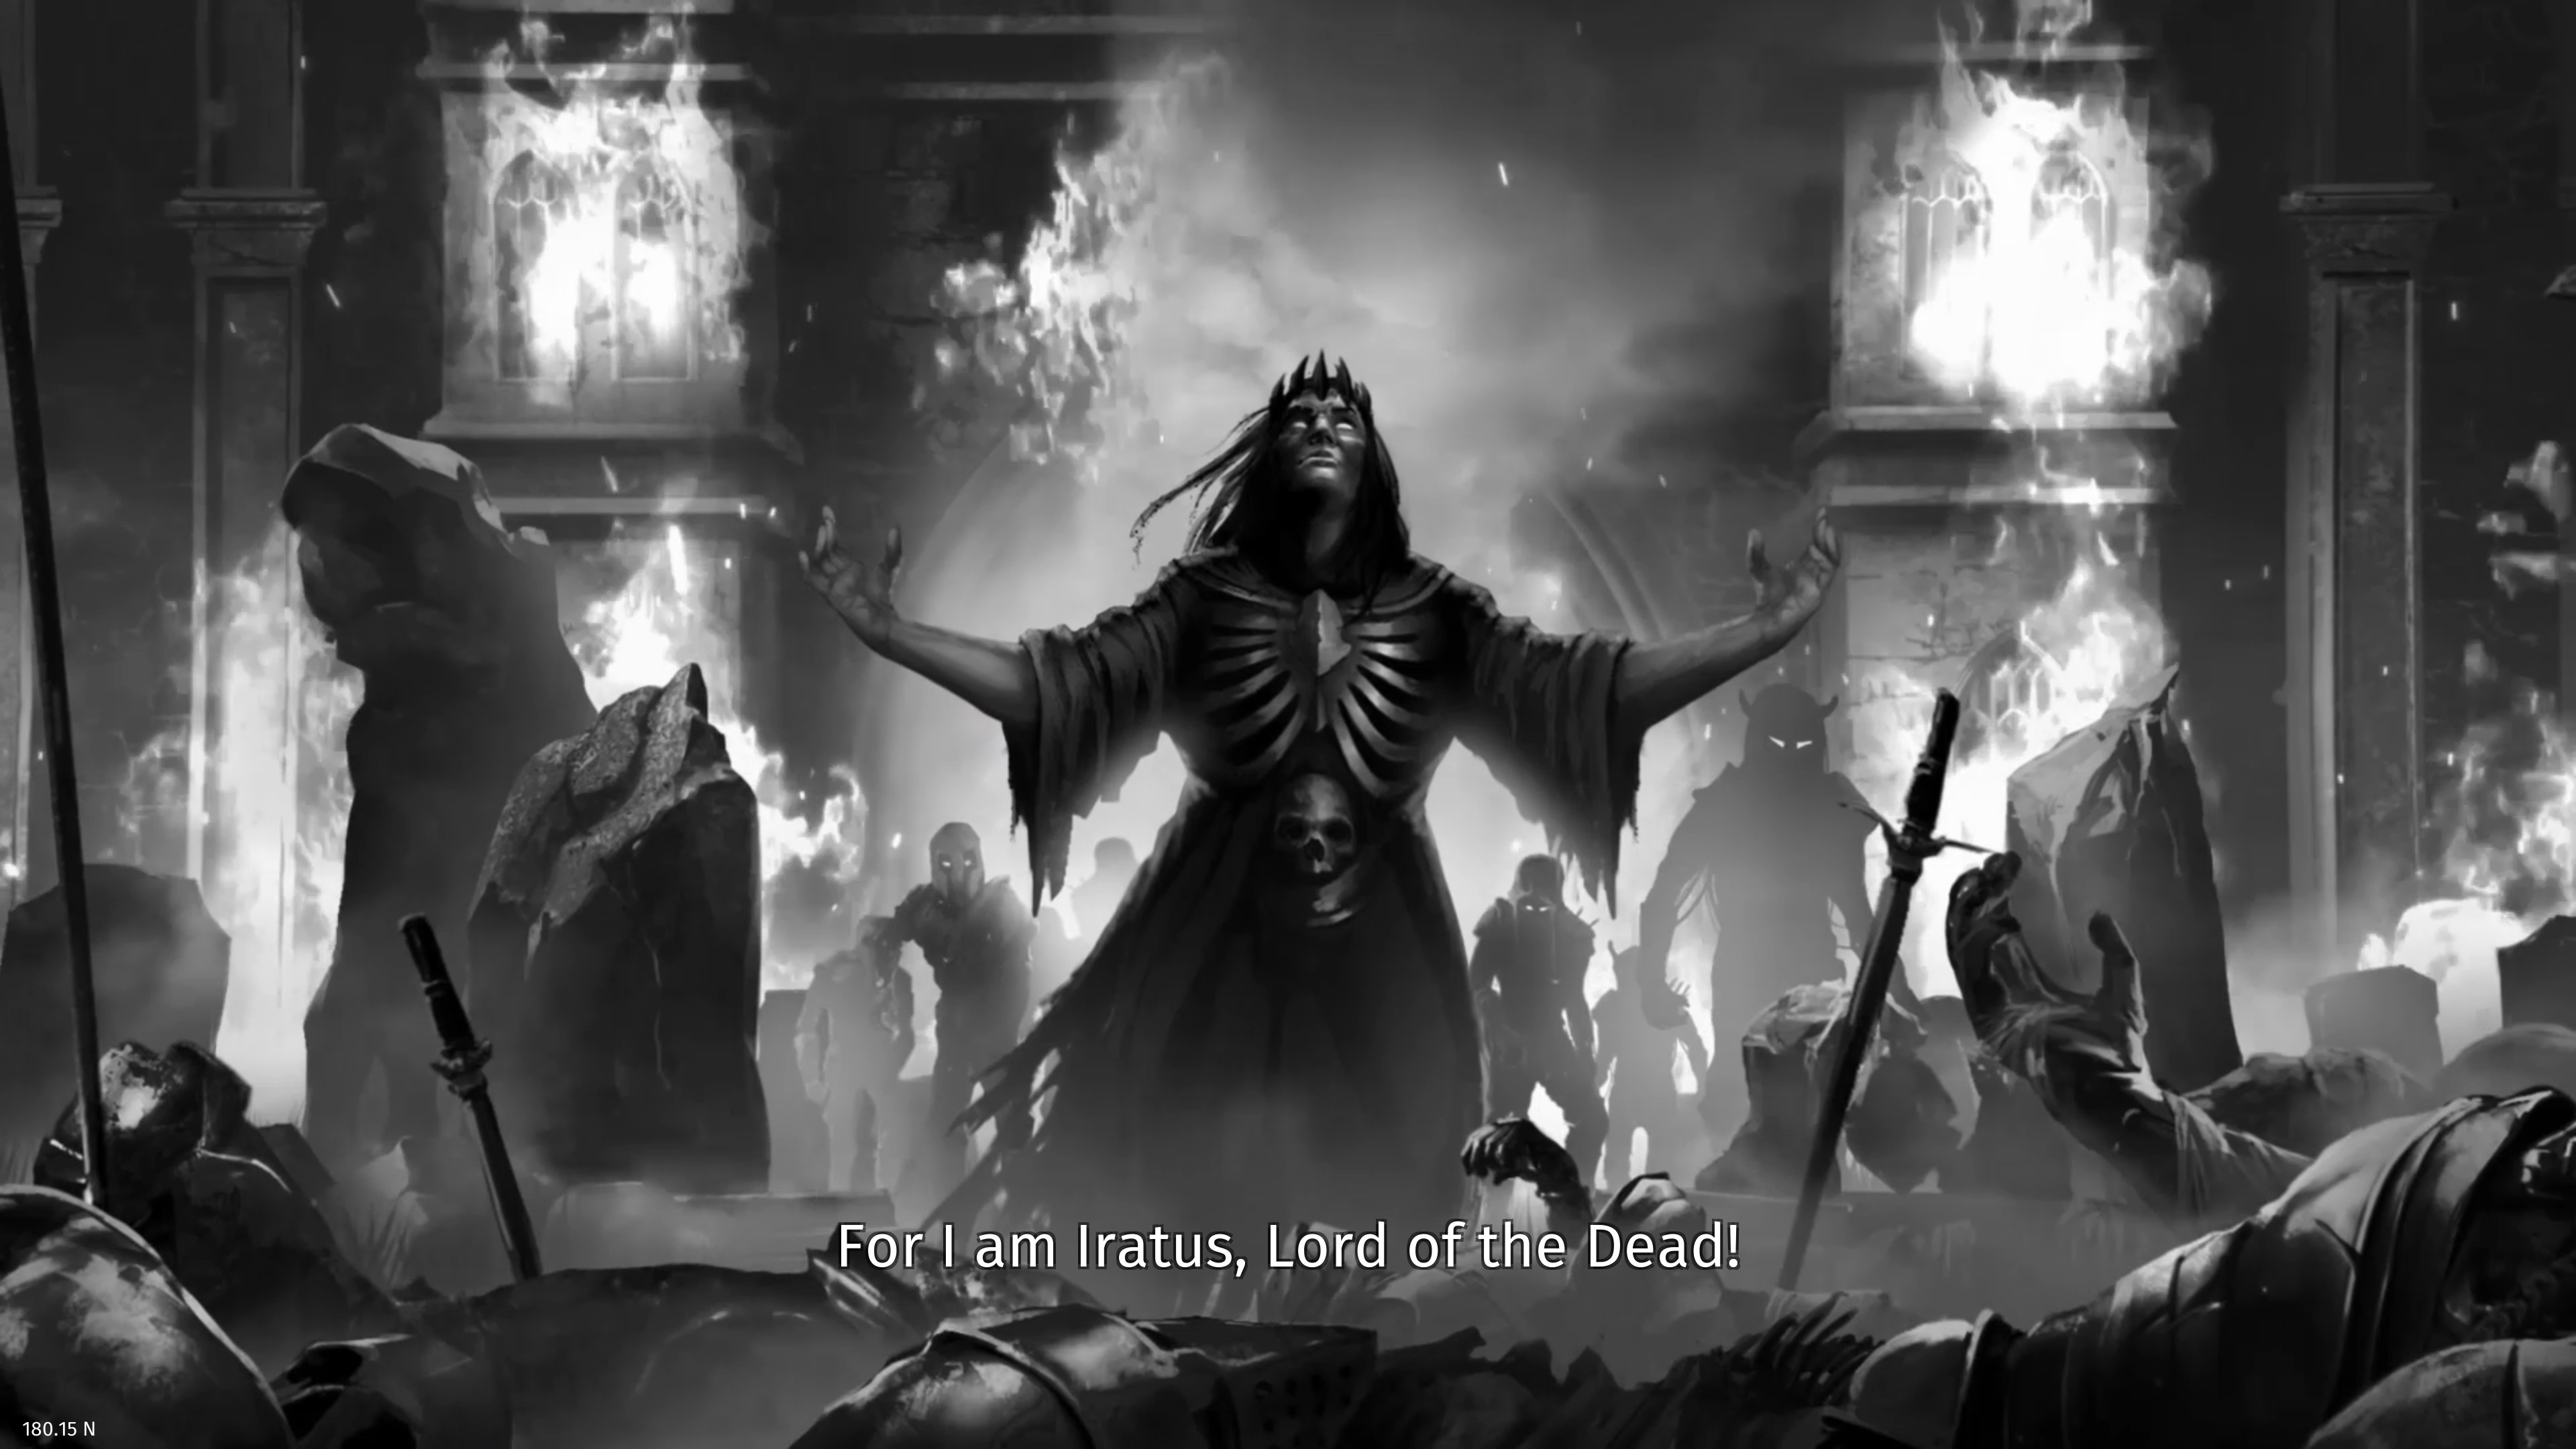 Iratus  Wrath of the Necromancer DLC. Iratus and his minions in front of a burning building